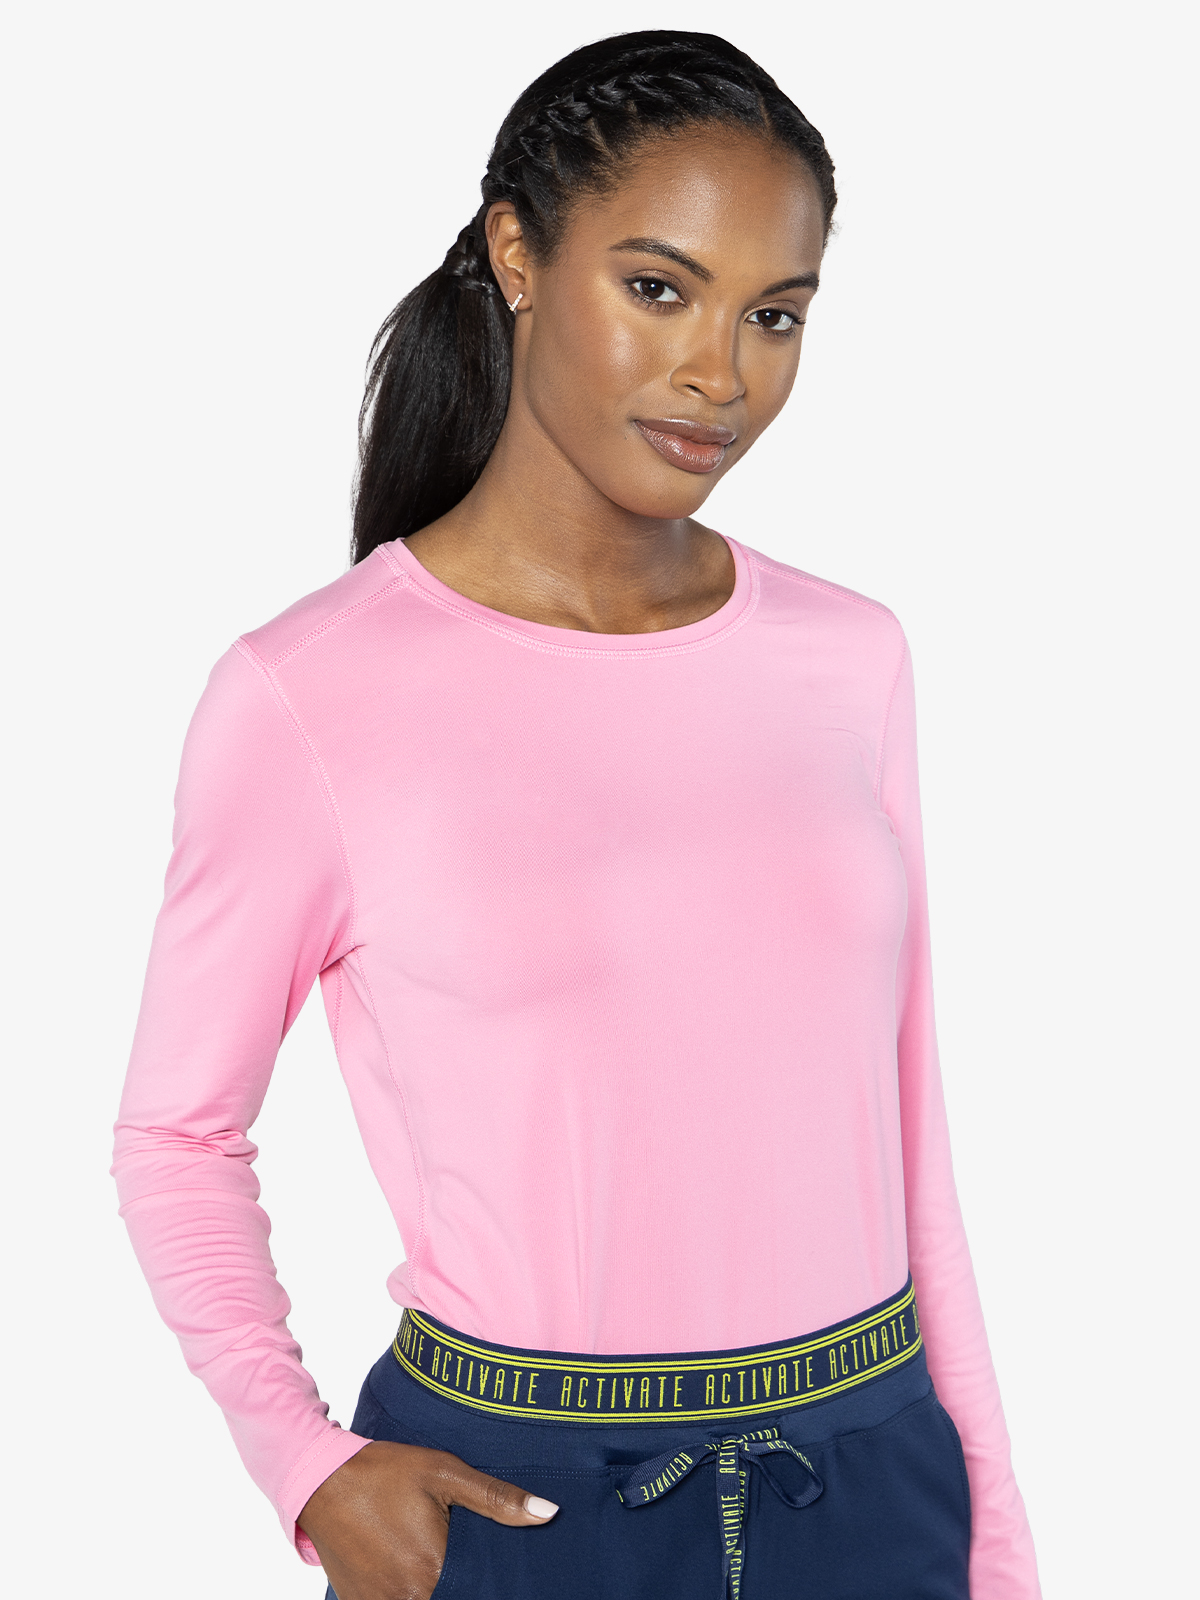 Layers Performance Knit Tee | 8499